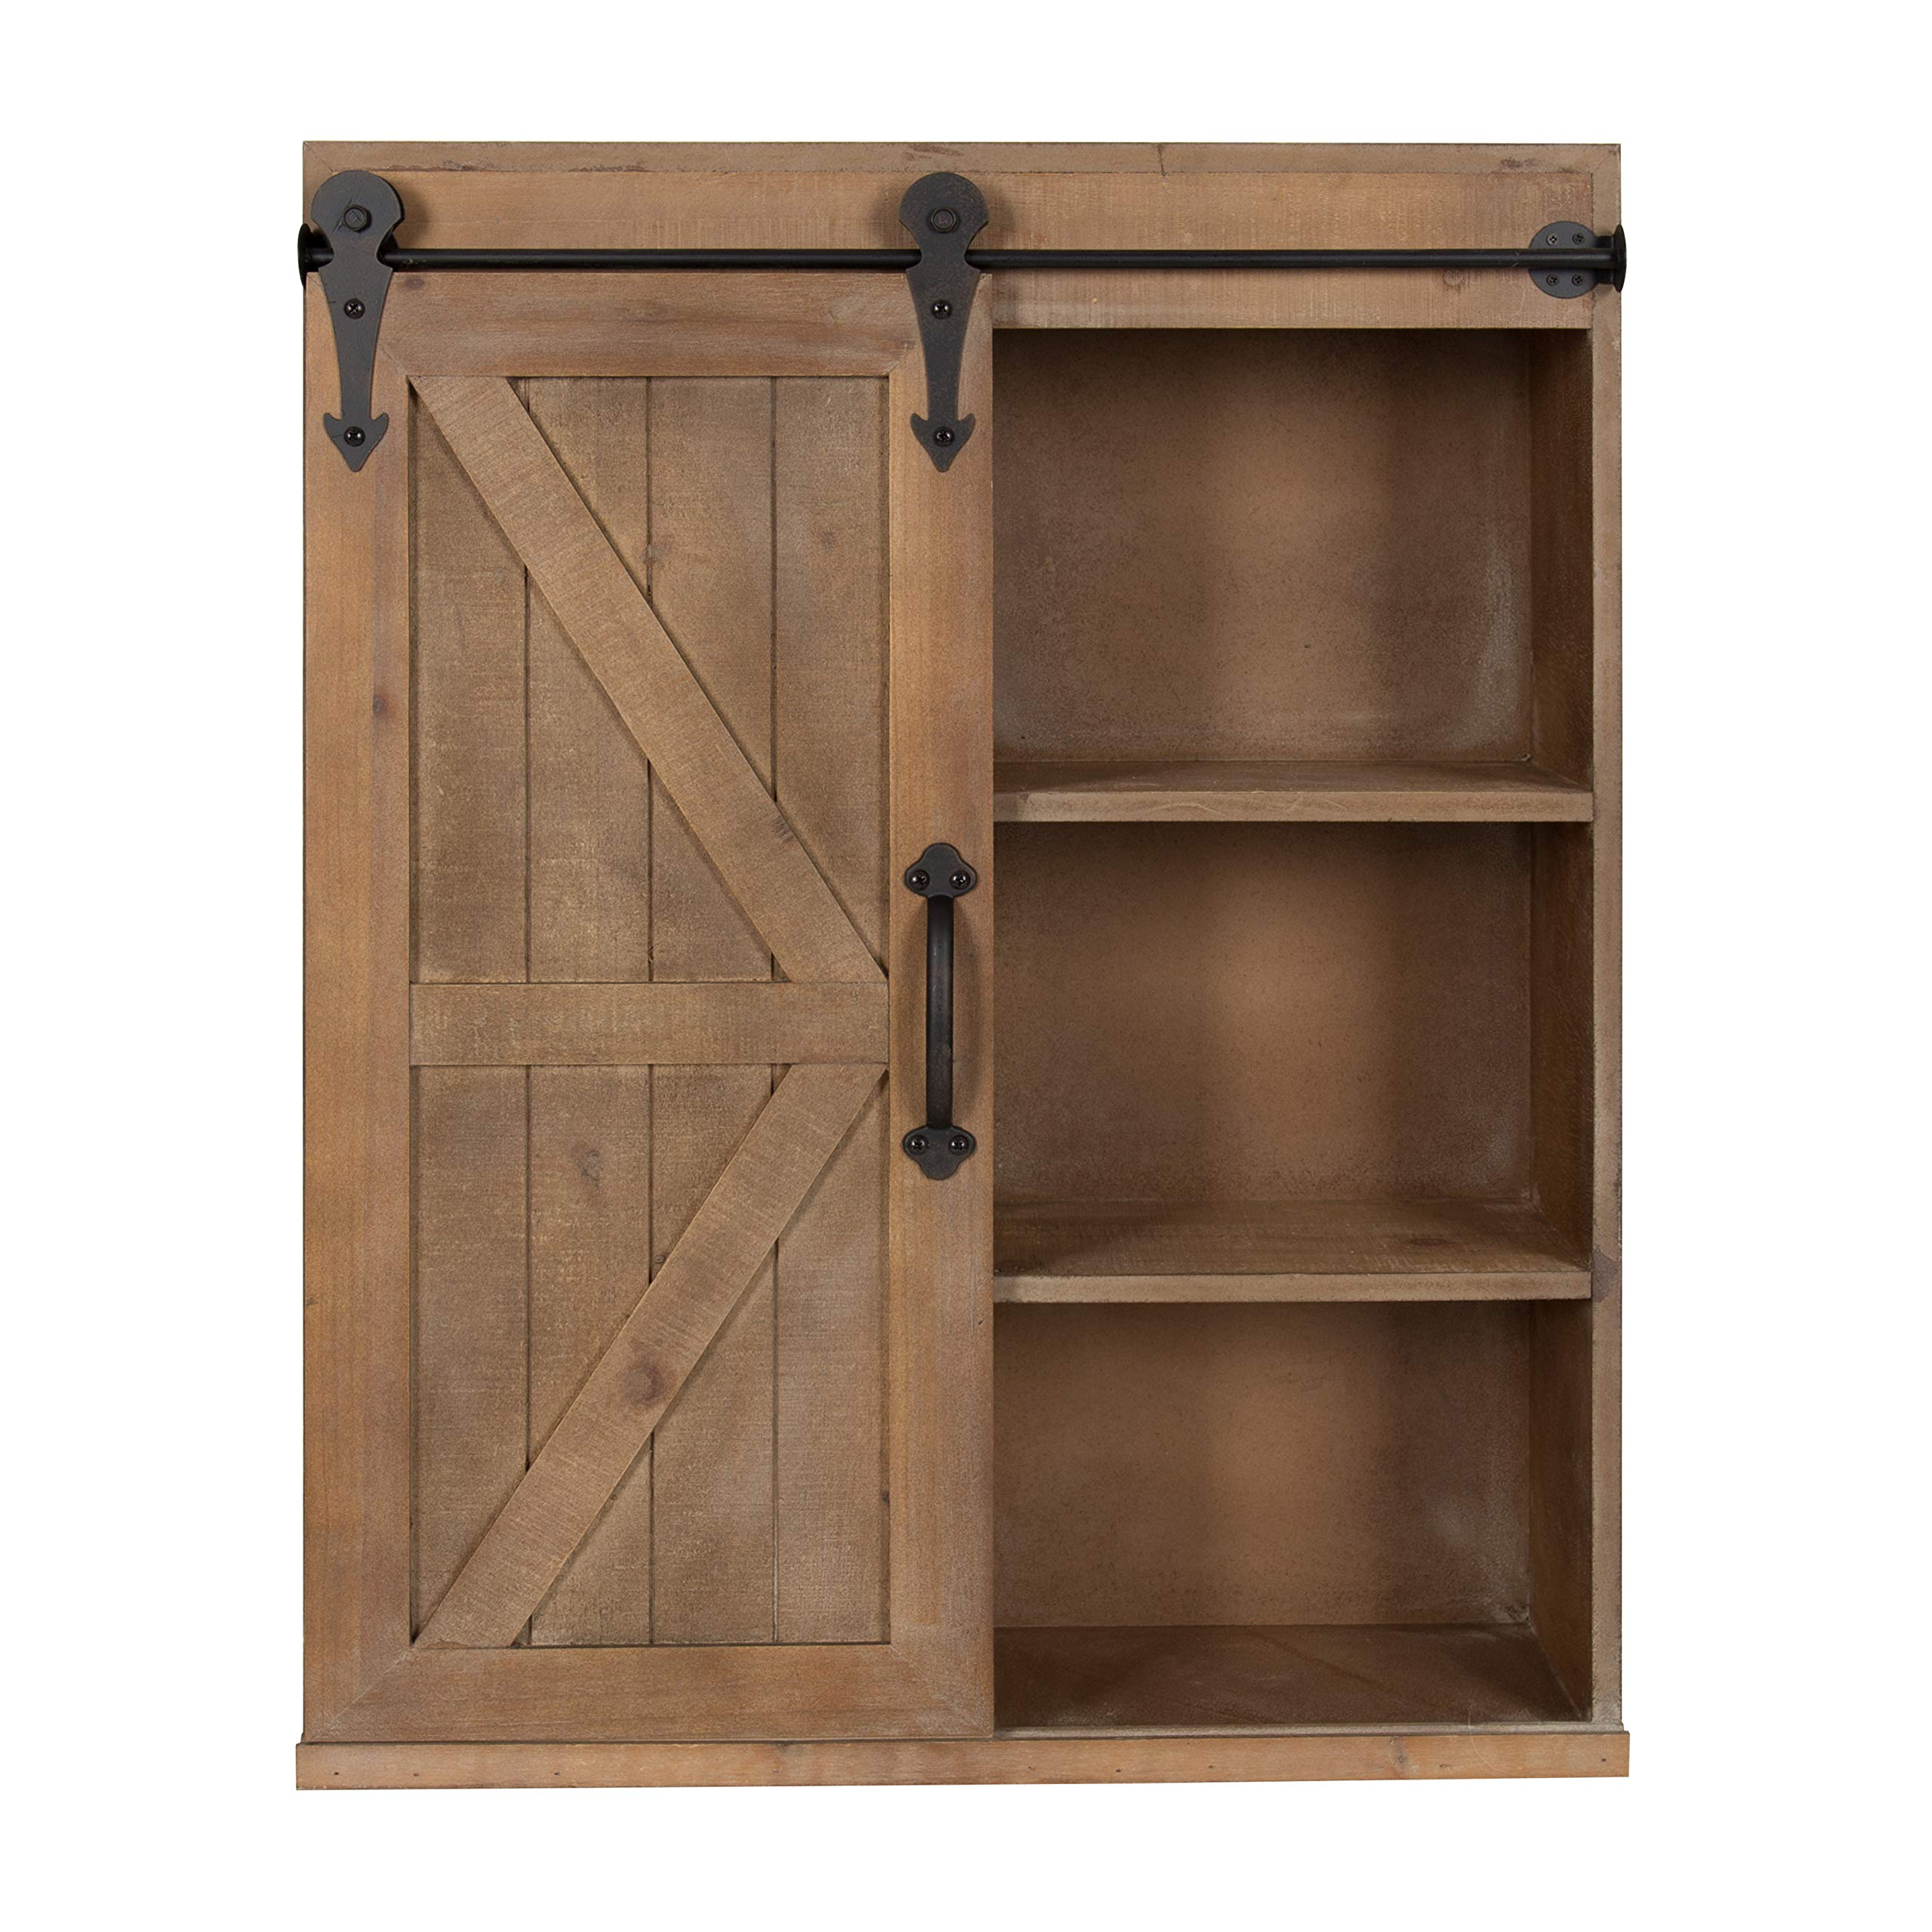 Kate and Laurel Cates Wood Wall Storage Cabinet with Sliding Barn Door, Rustic Brown by Kate and Laurel